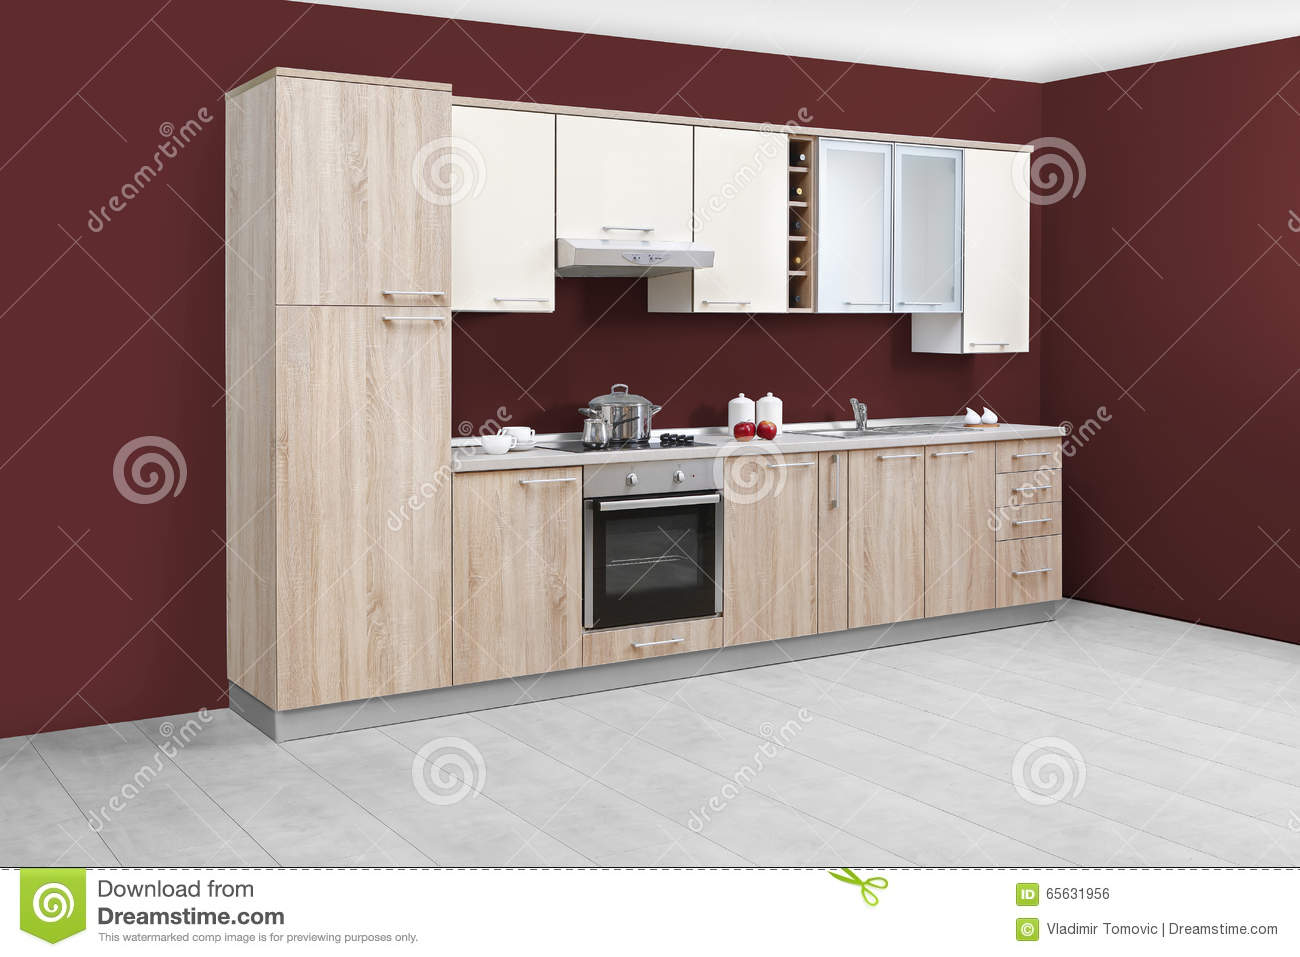 Cuisine moderne meubles en bois simple et propre photo for Cuisine simple et moderne